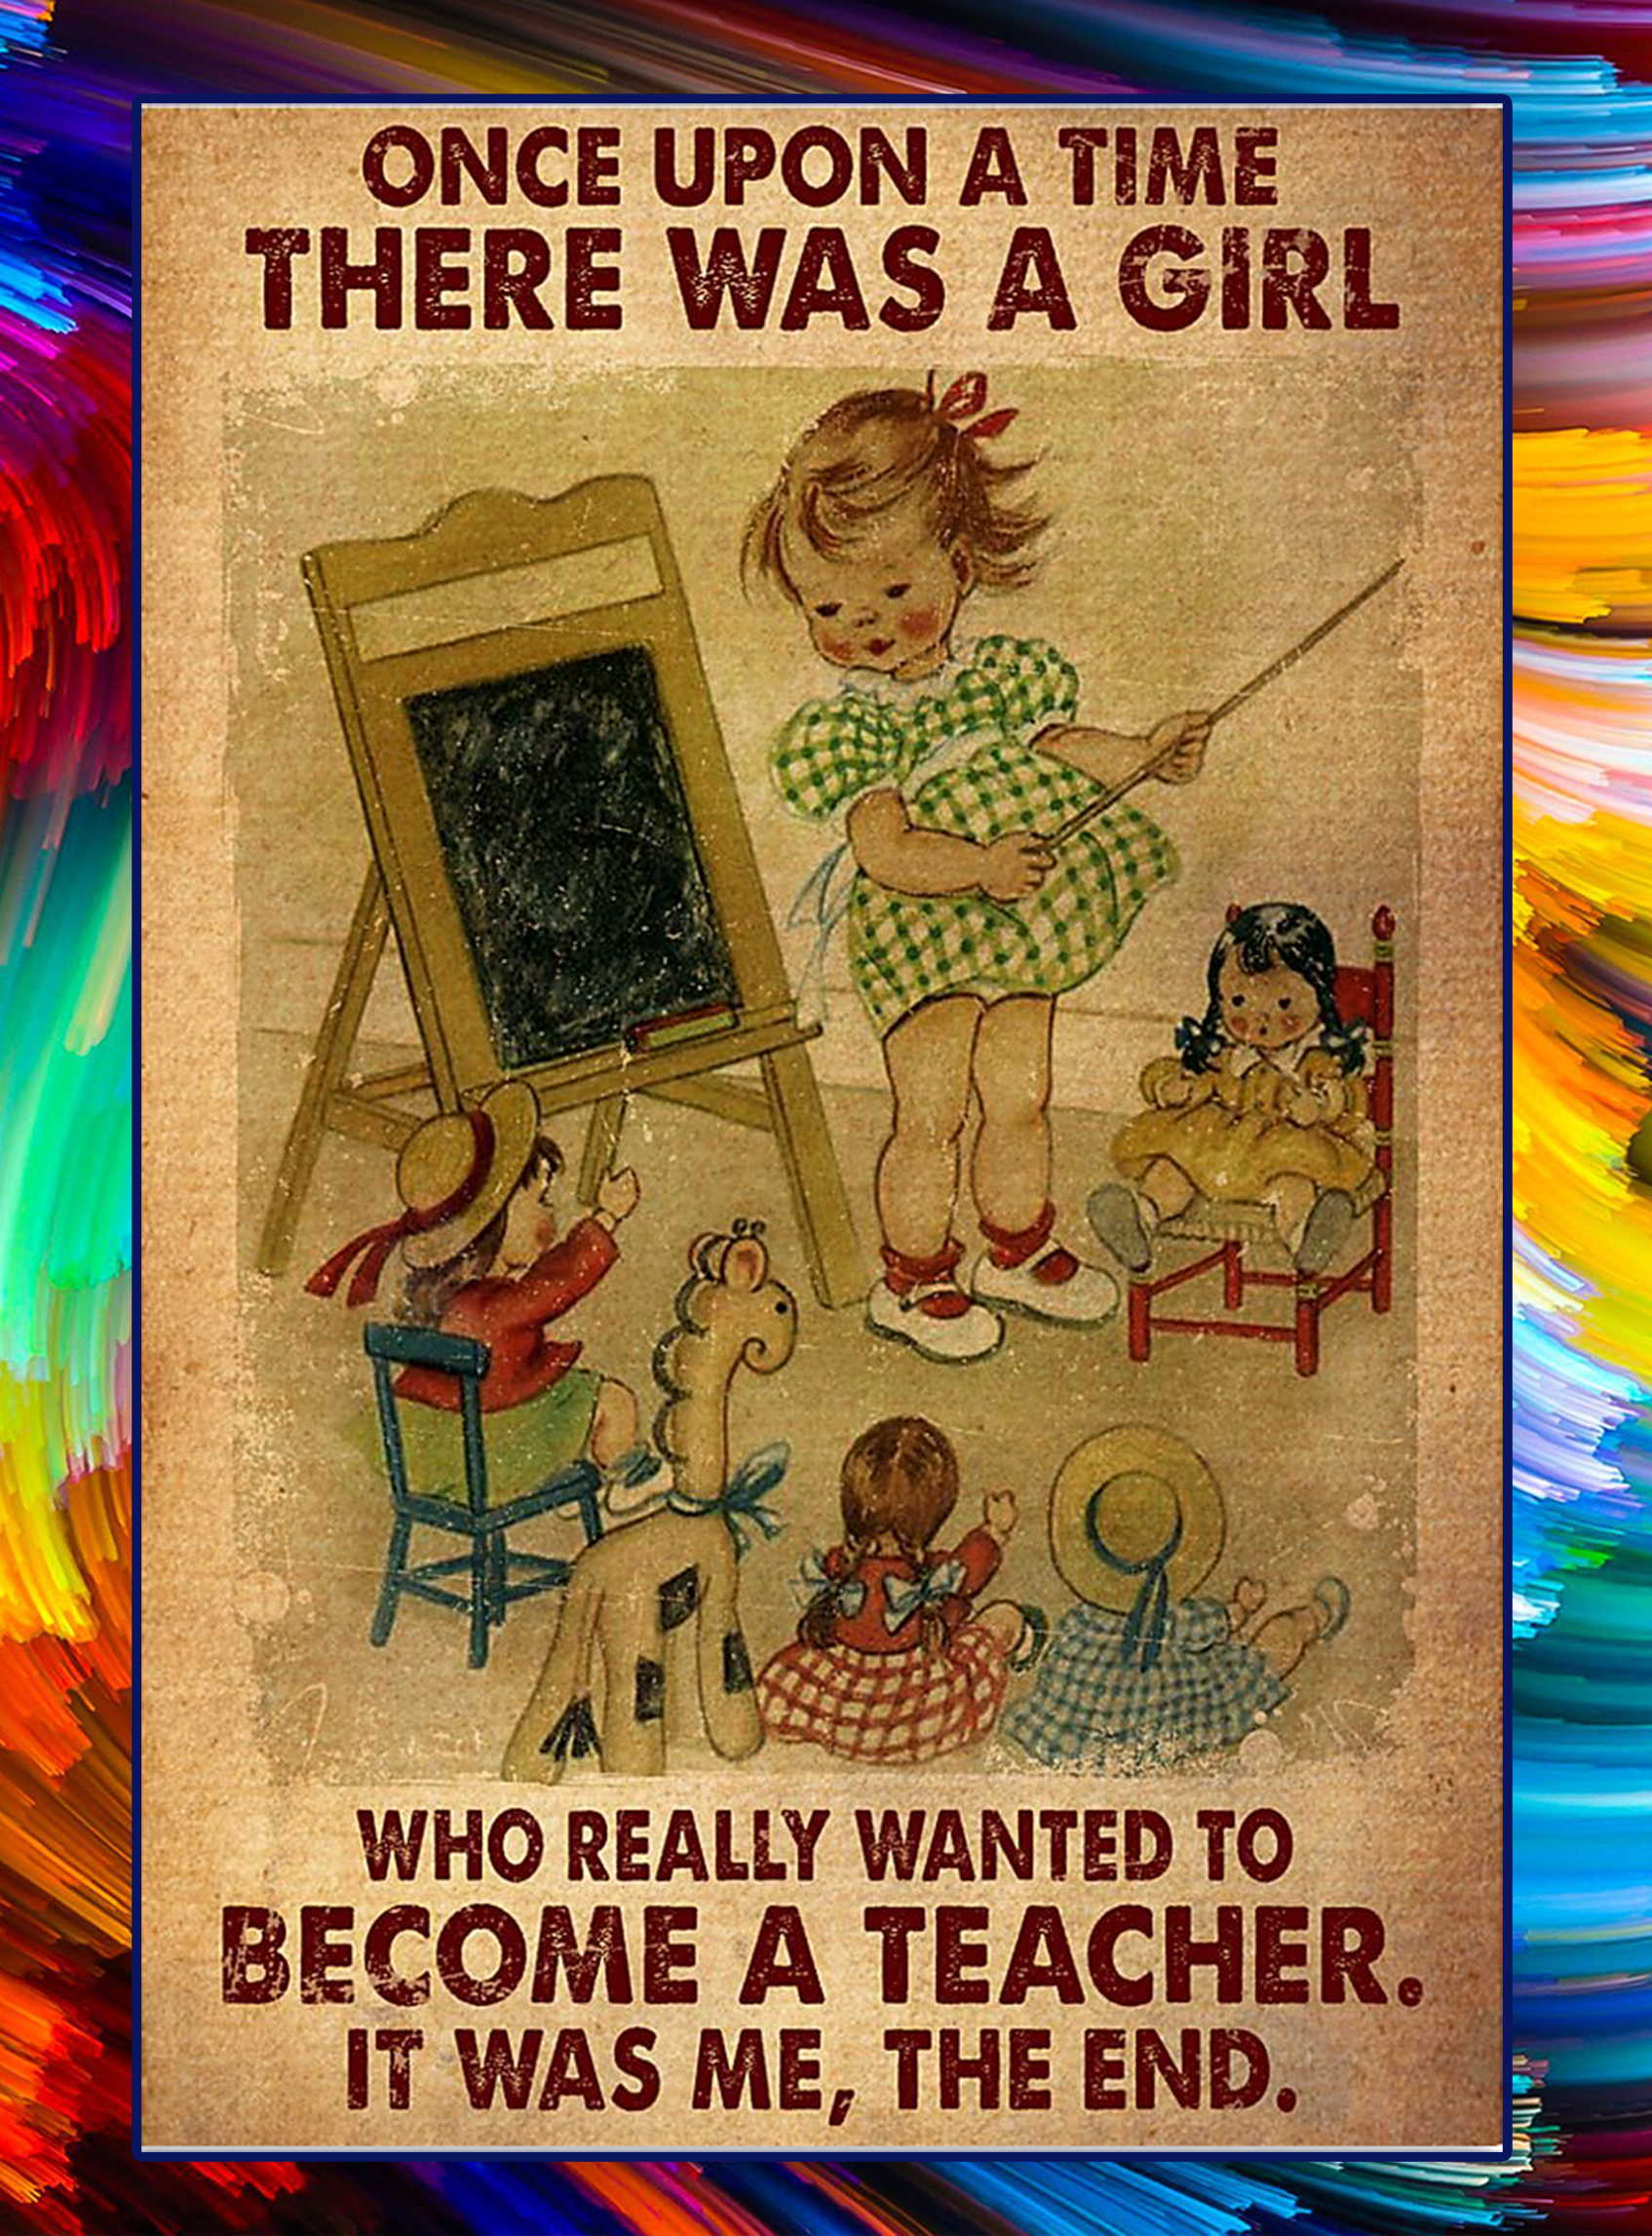 Once upon a time there was a girl wanted to become a teacher poster - A1